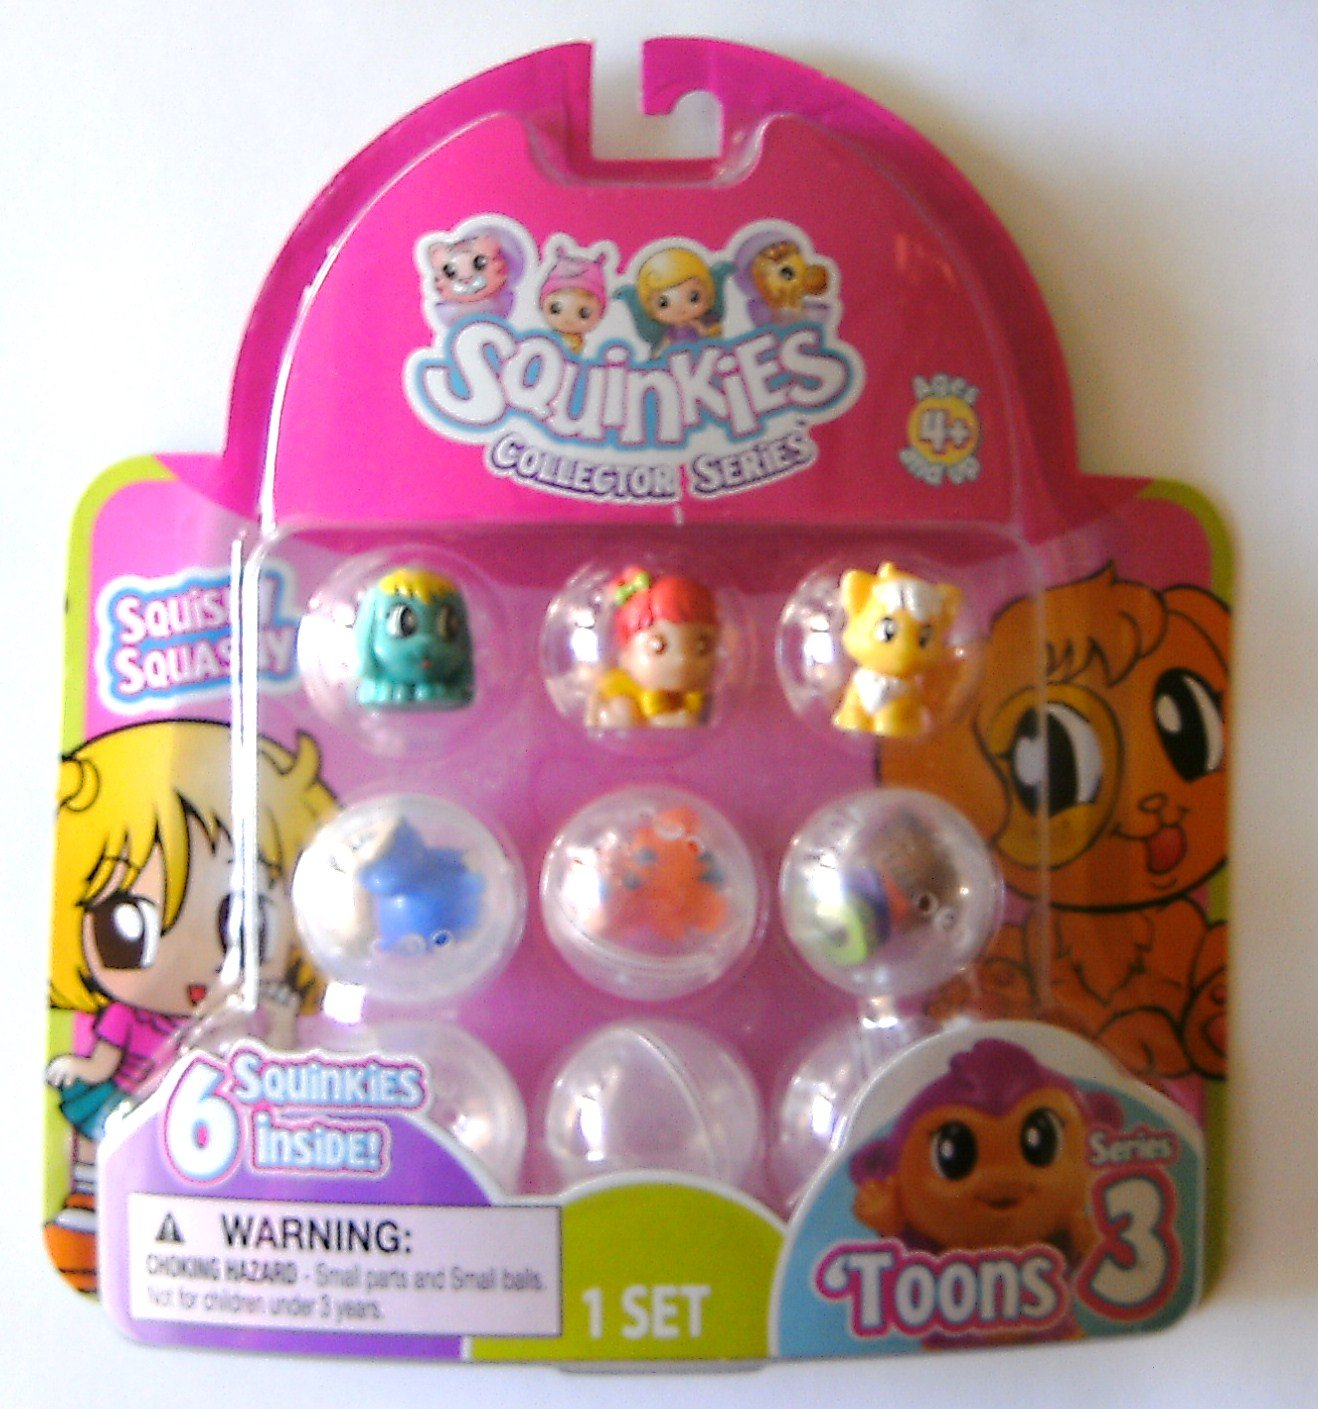 Squinkies Collector Series Toons 3 Spin Master 1001130 1A710693